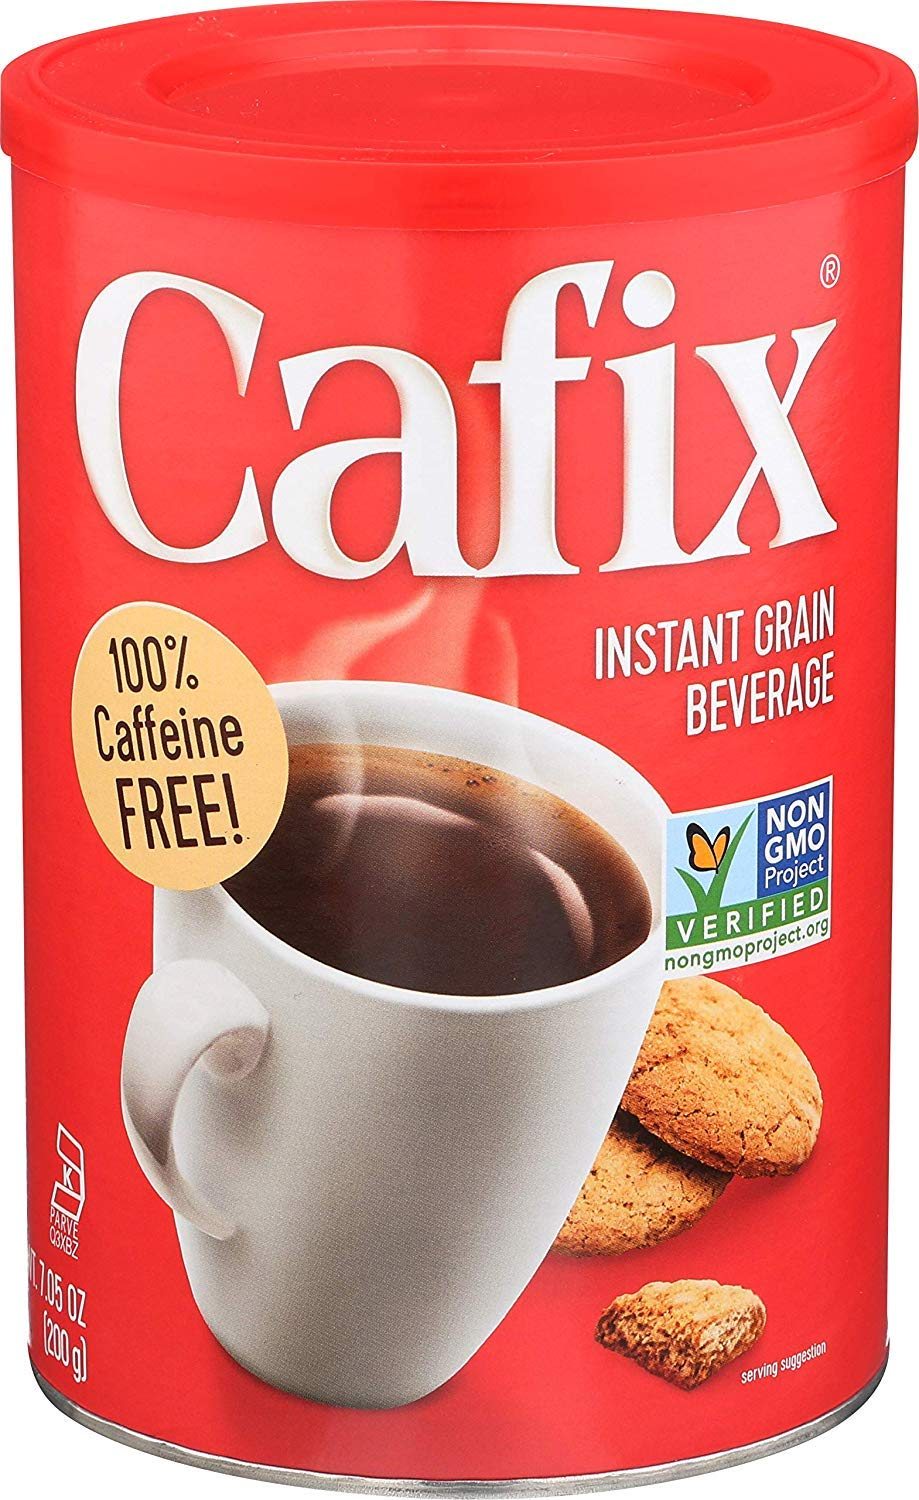 Cafix Caffeine-Free All-Natural Instant Coffee Substitute, 7.05-oz. Packages (12 Pack)